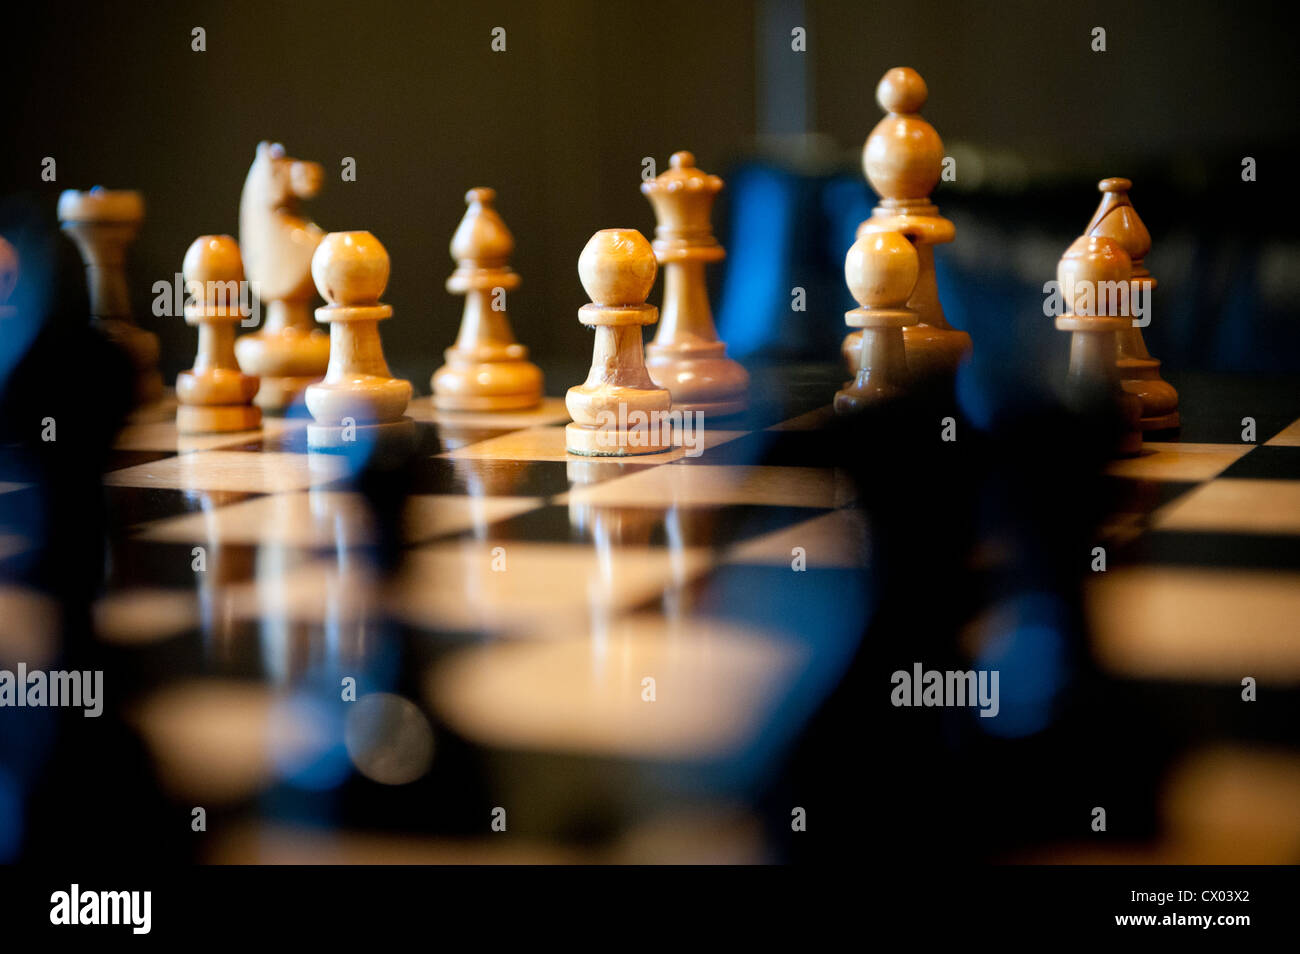 Carved wooden chess pieces on a chess board in warm light. Stock Photo